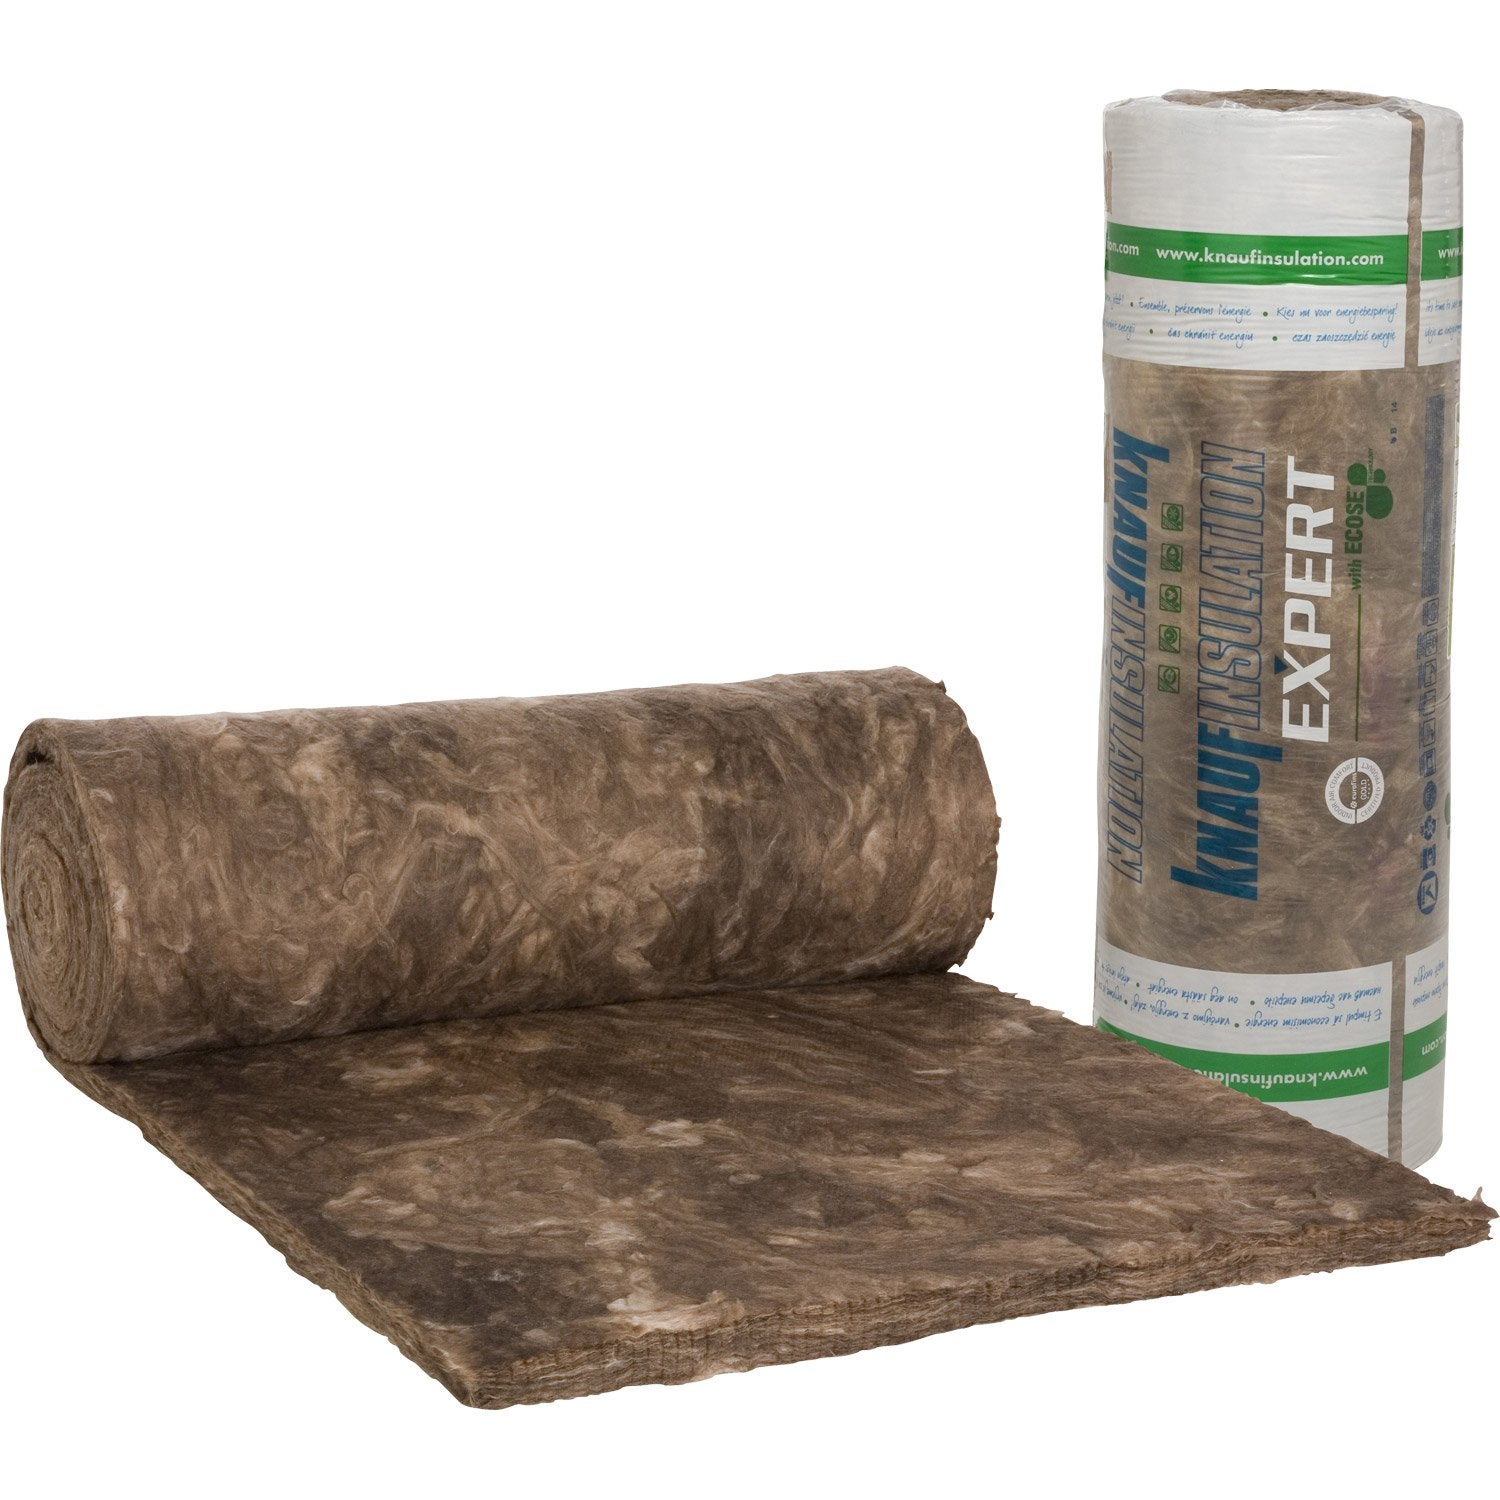 Laine de verre nu knauf insulation 9 3 x 1 2 m ep 60 mm for Laine de verre vrac